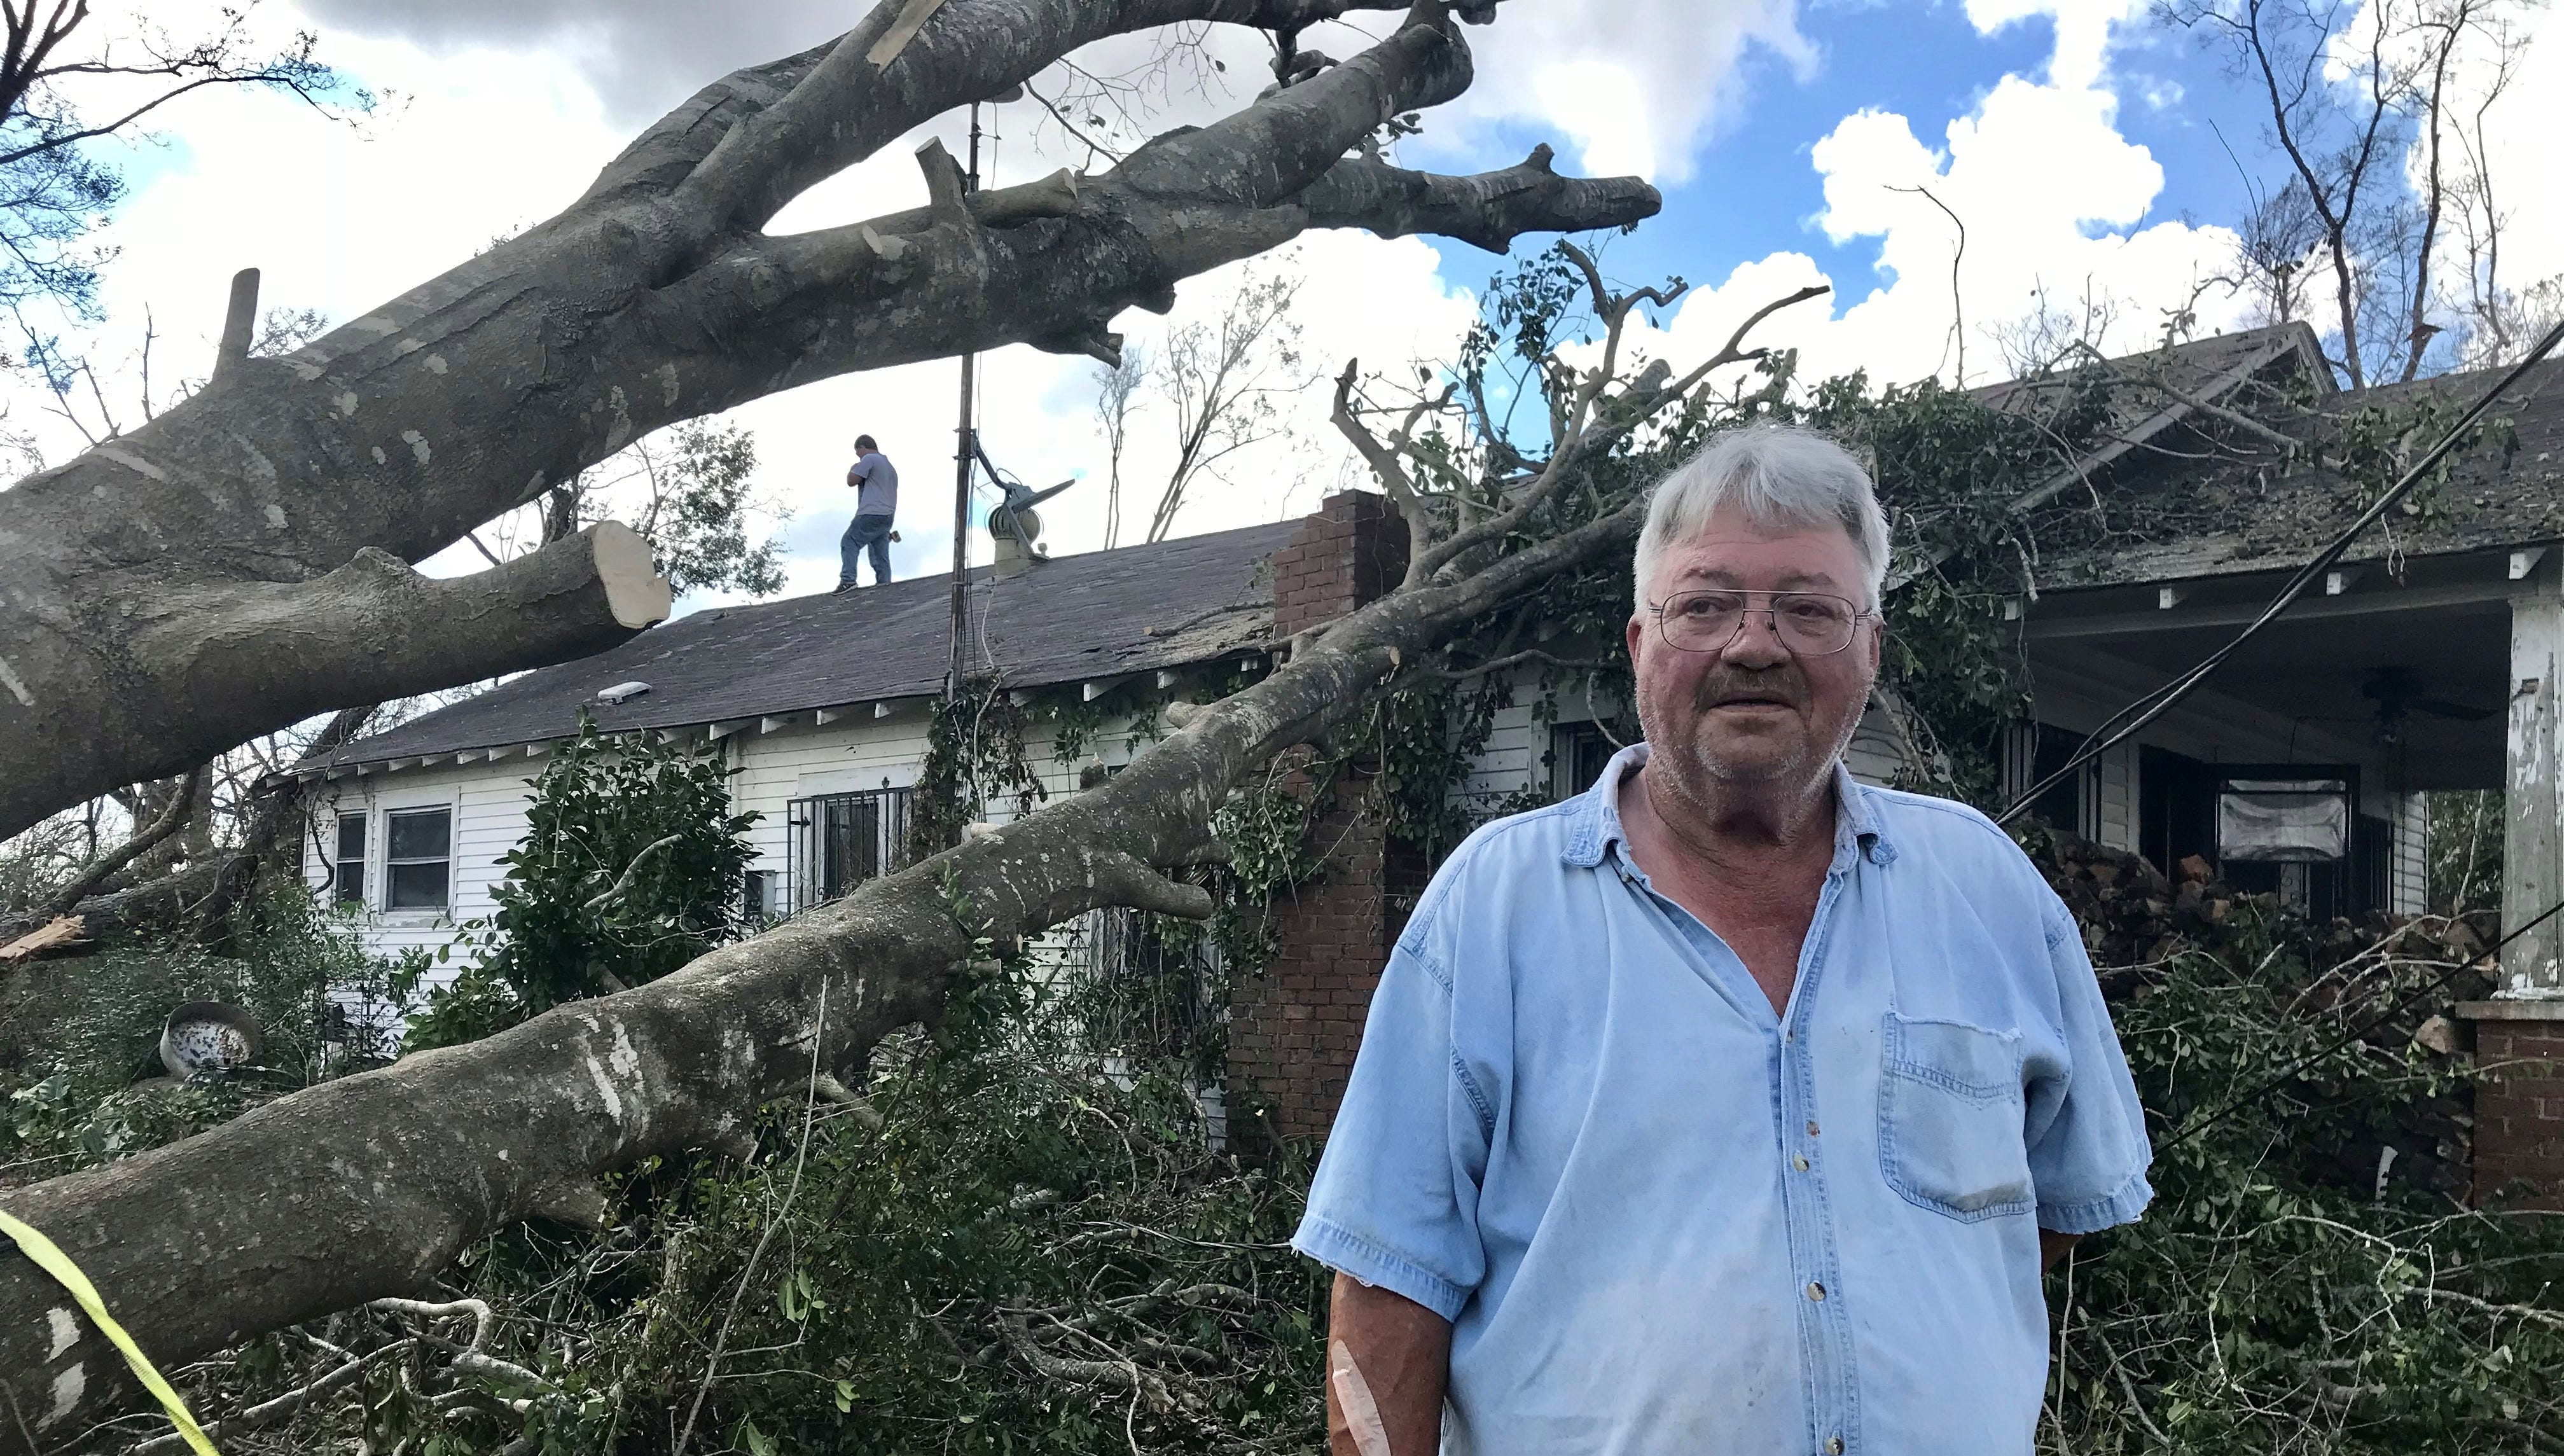 Hurricane Michael sent several trees on top of Frank and Sandy Graham's home in Altha. Family members came from Mississippi to help make repairs.